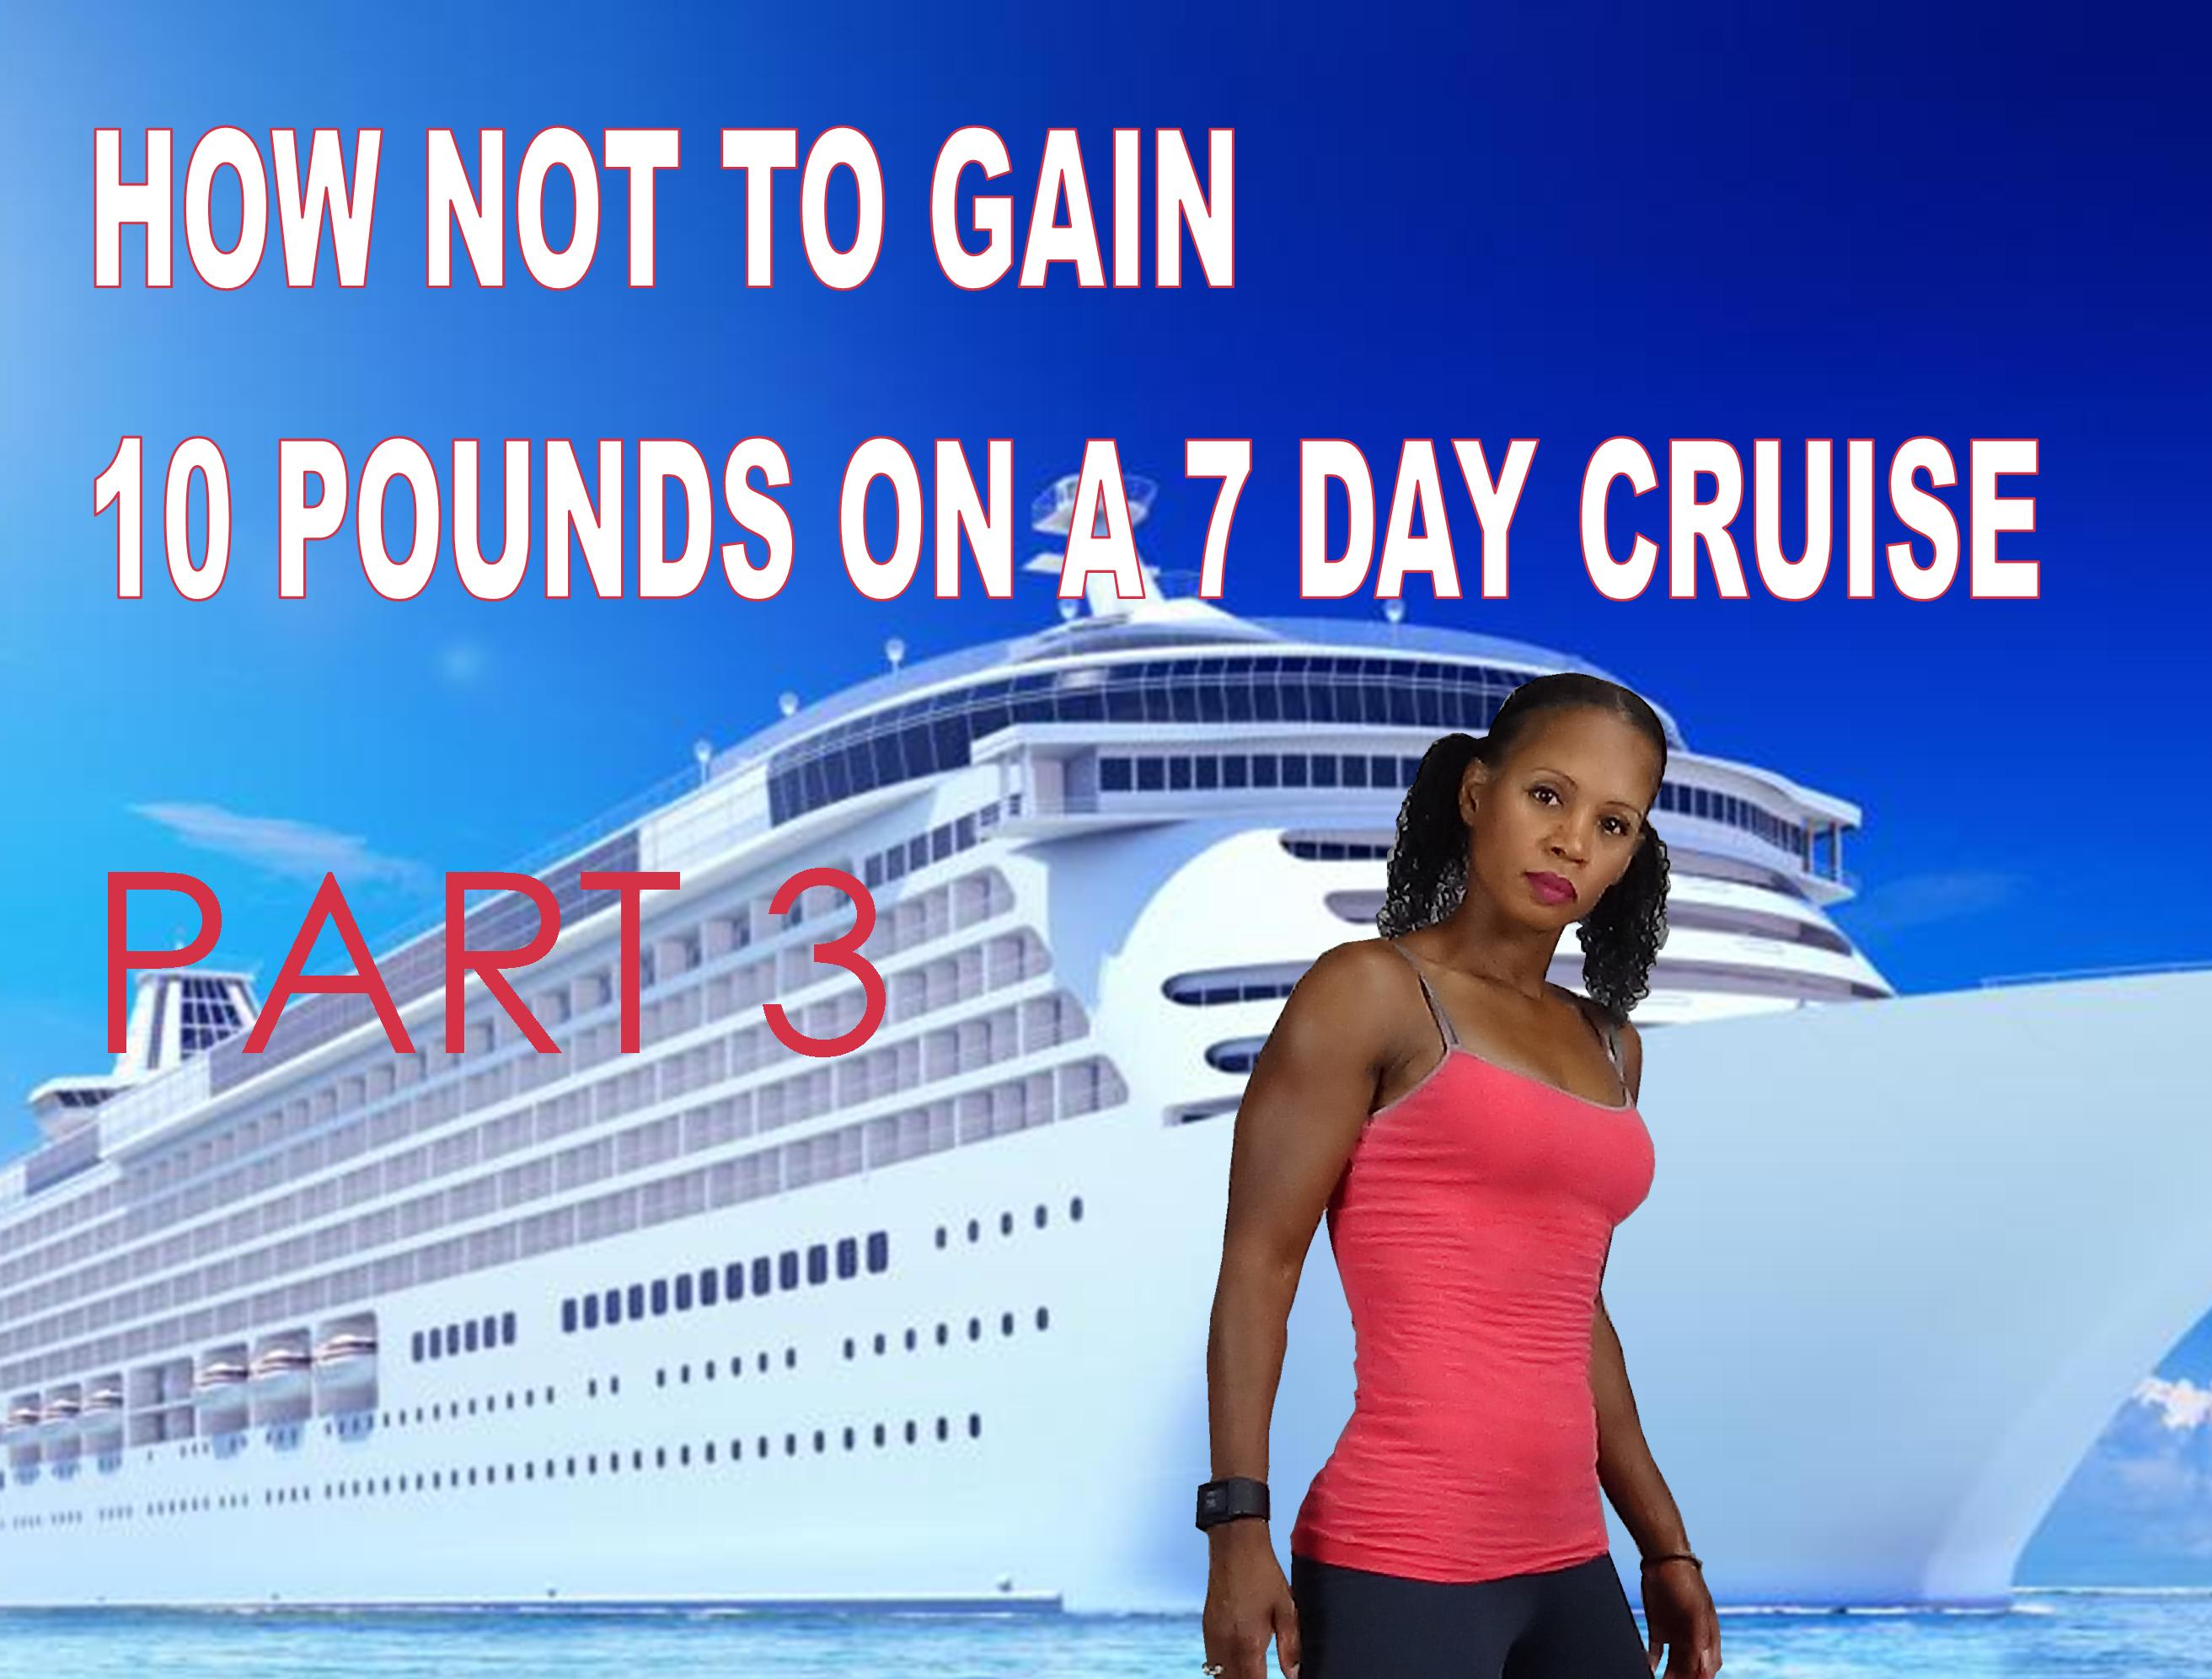 How NOT To Gain 10 Pounds On A 7 Day Cruise